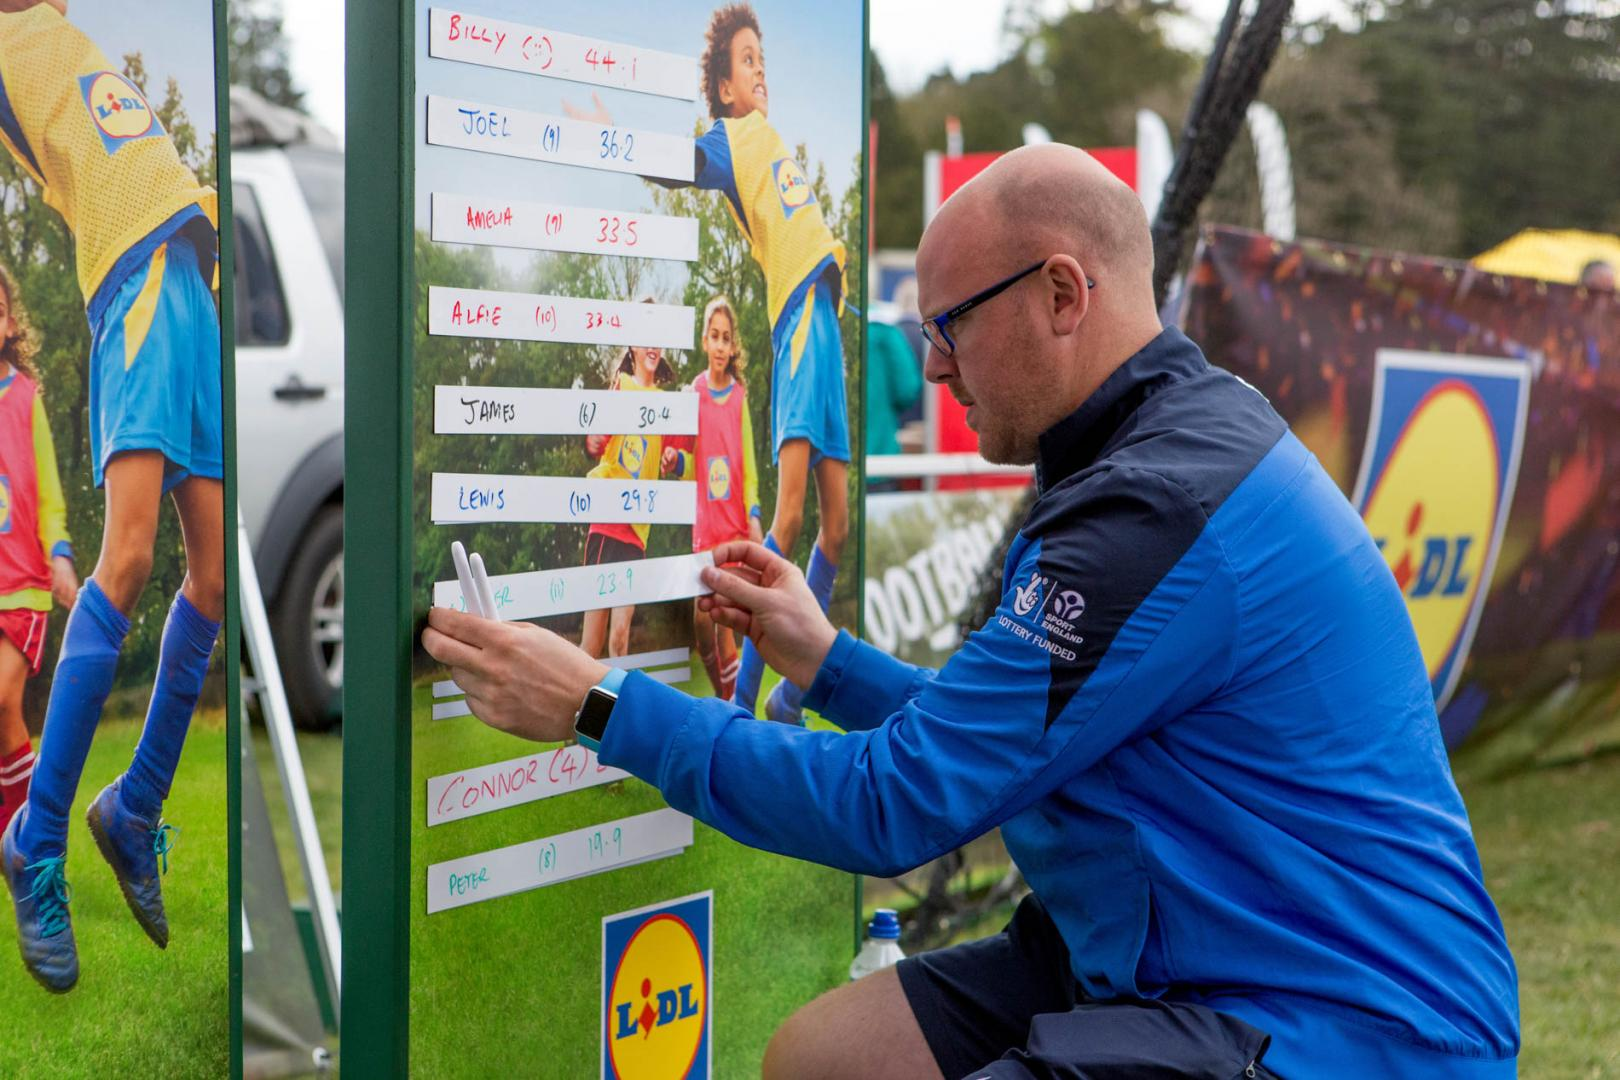 Editorial Photography for Lidl Football Zone